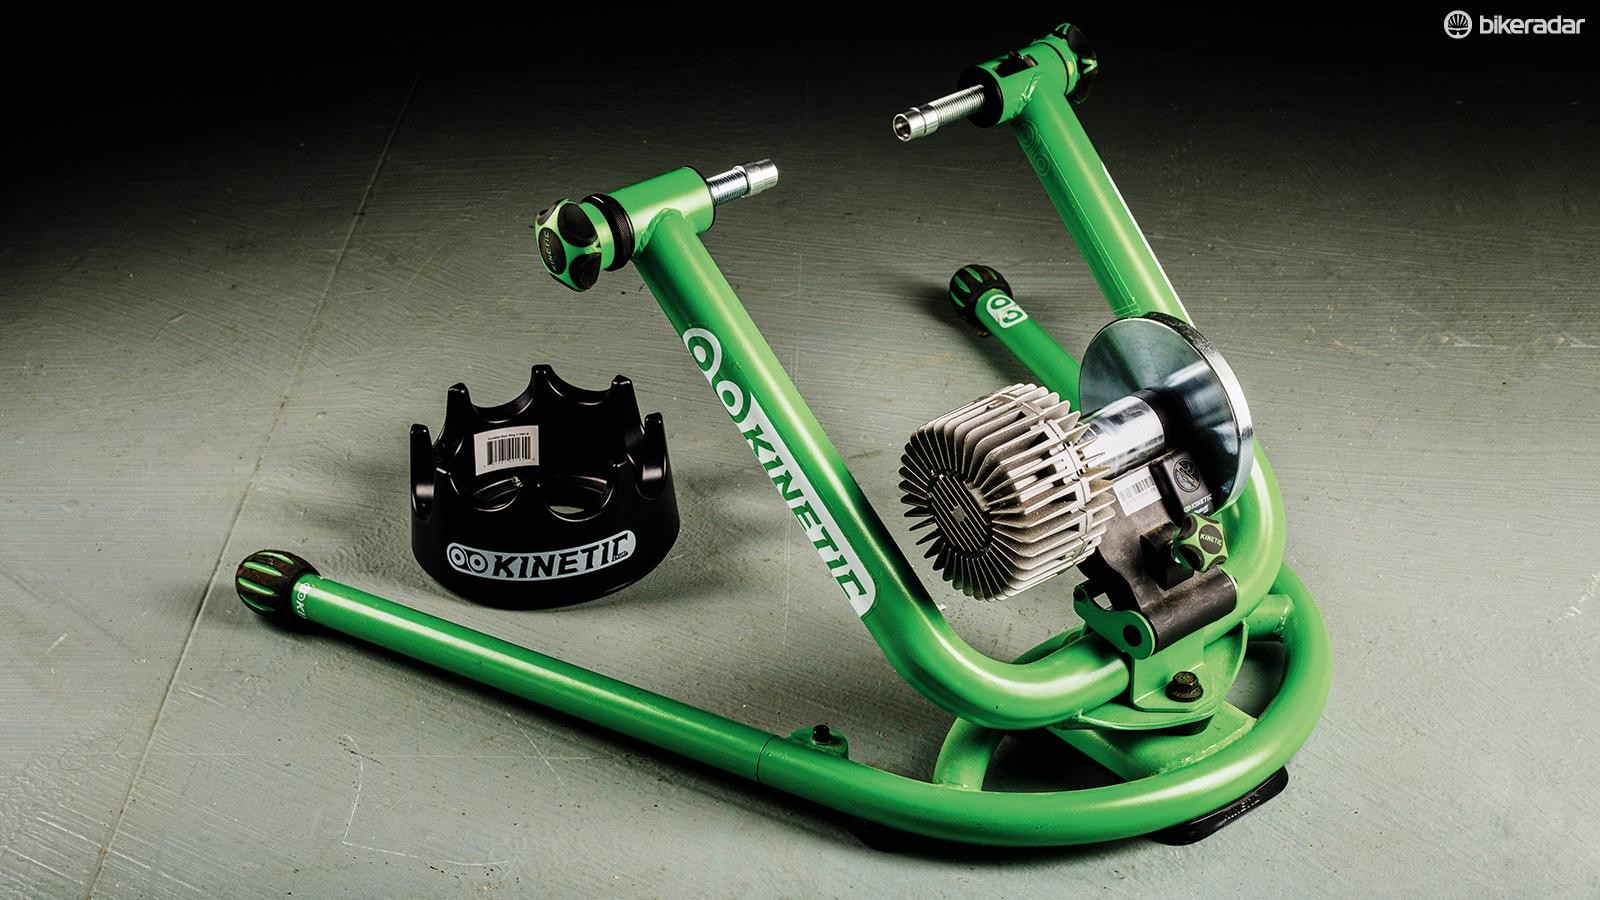 The wheel rolls on a metal or composite drum on a regular turbo trainer